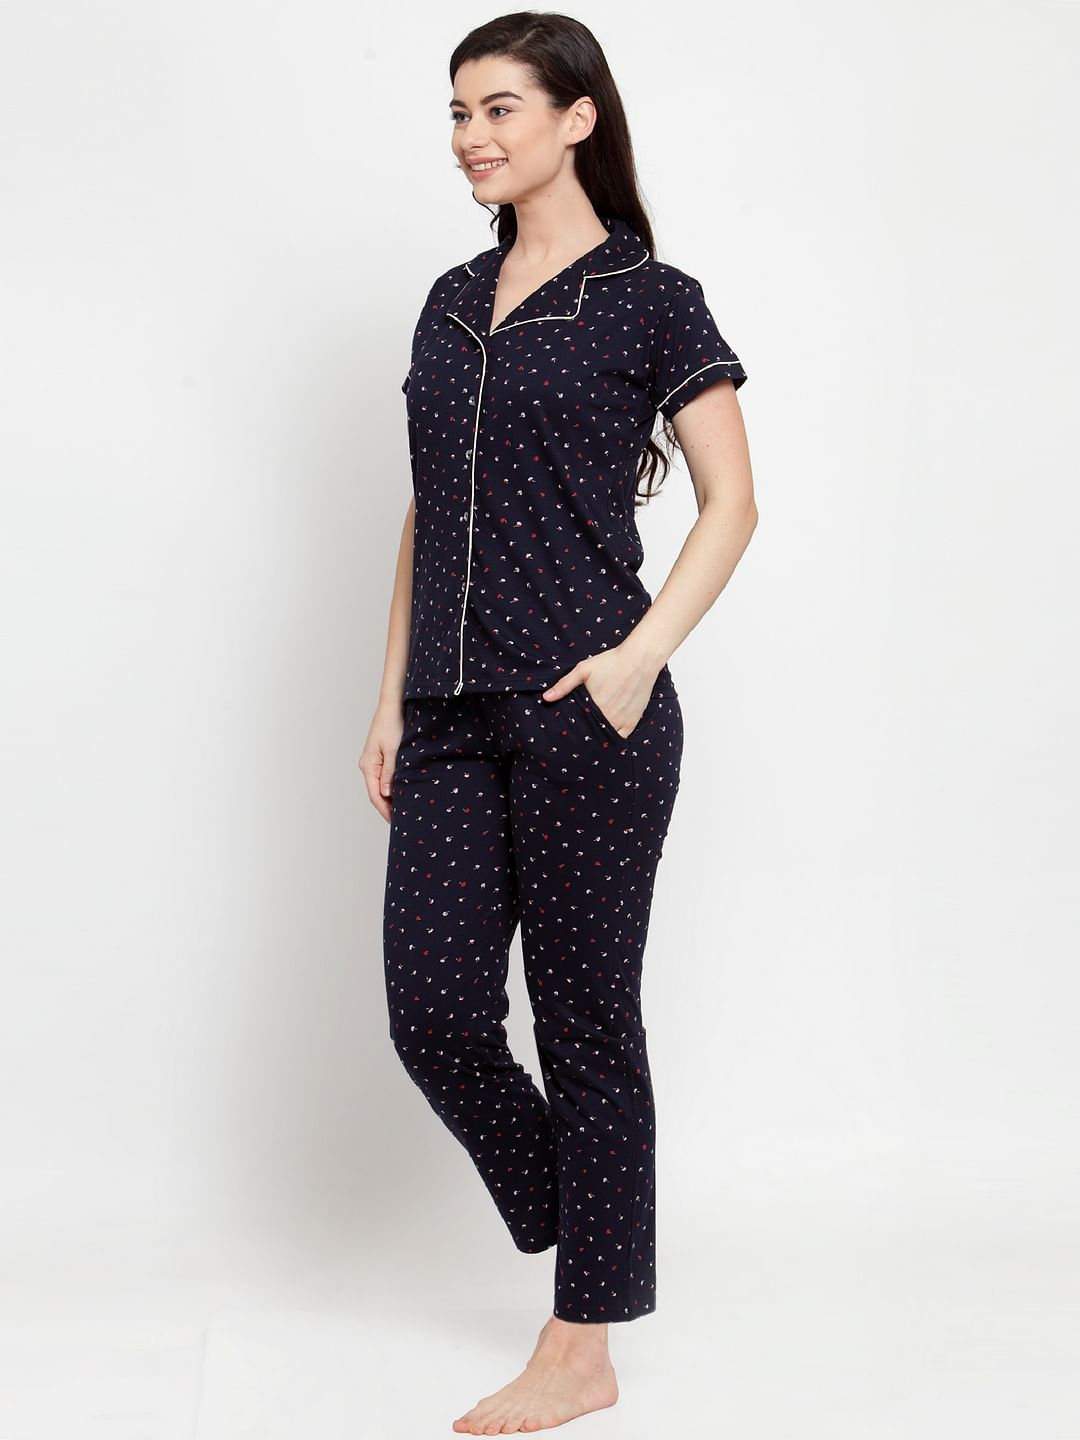 Secret Wish Women's Navy Blue Cotton Printed Nightsuit